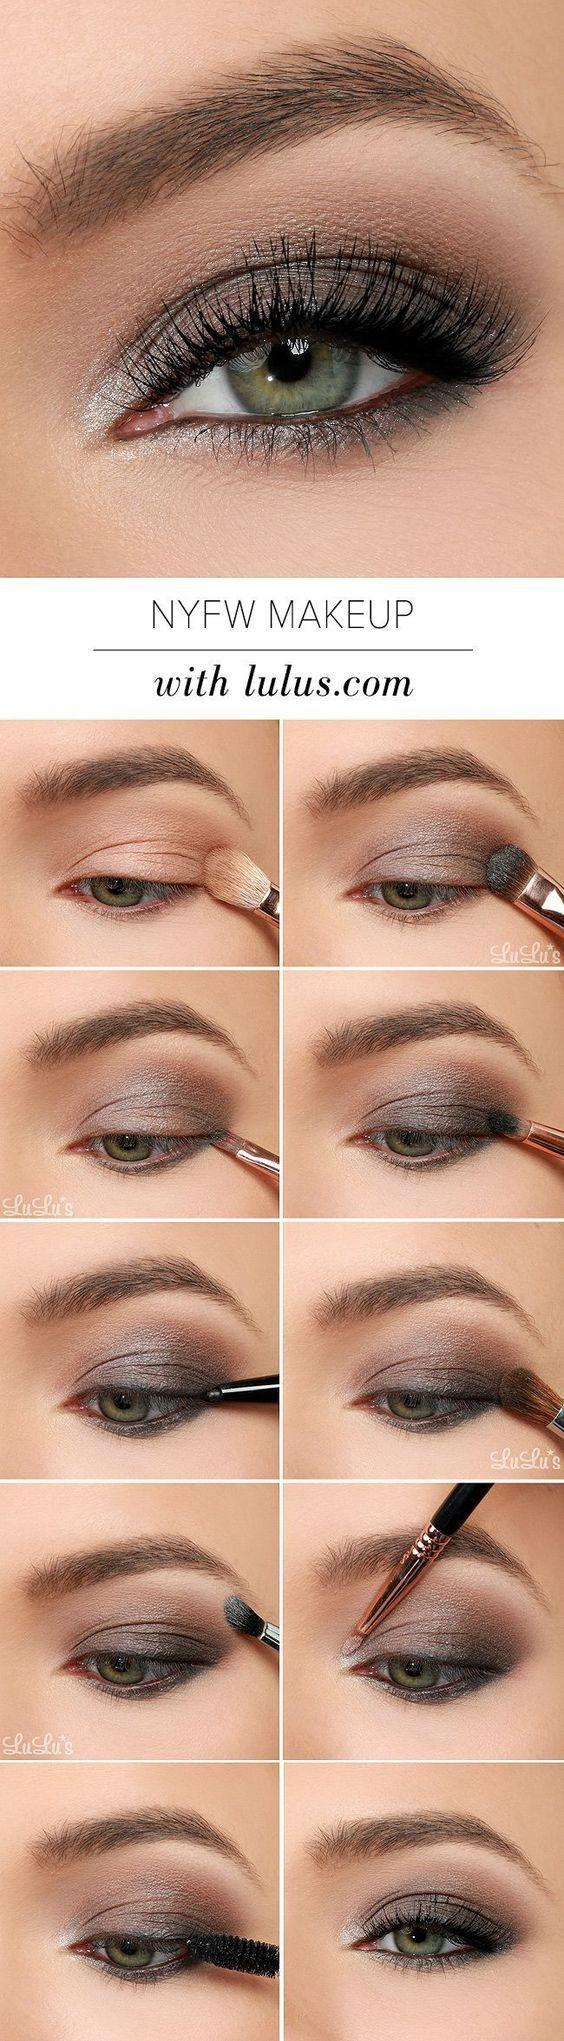 Wedding - New York Fashion Week Eye Makeup